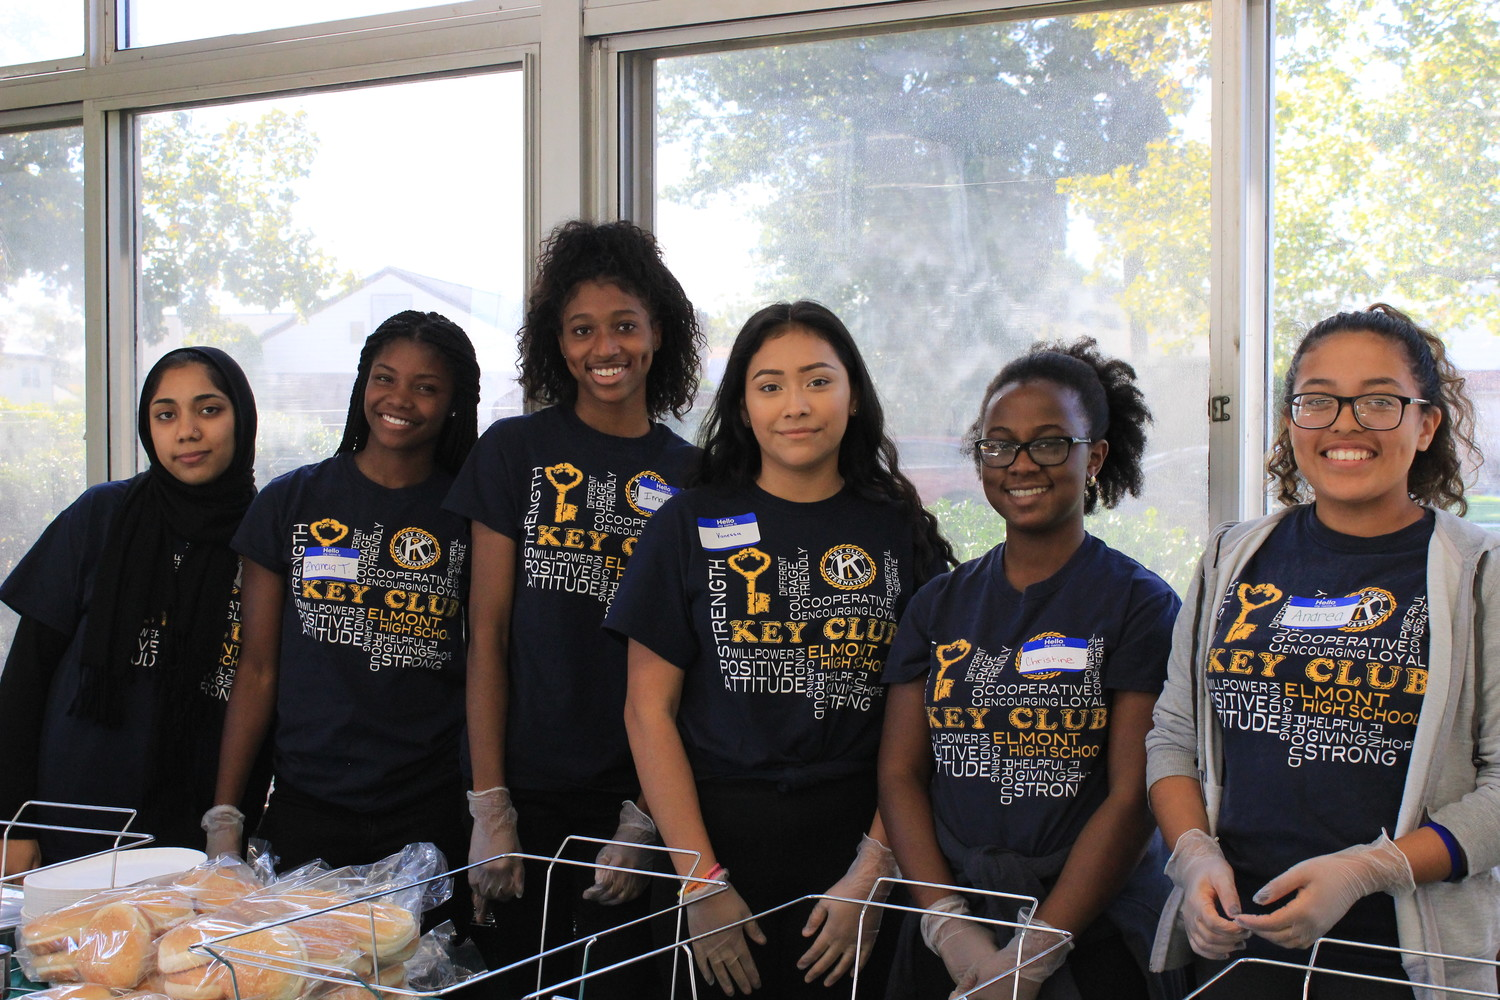 Members of Elmont Memorial High School's Key Club got ready to serve food at the second annual Elmont Family Fun Day held at the school on Sept. 9.